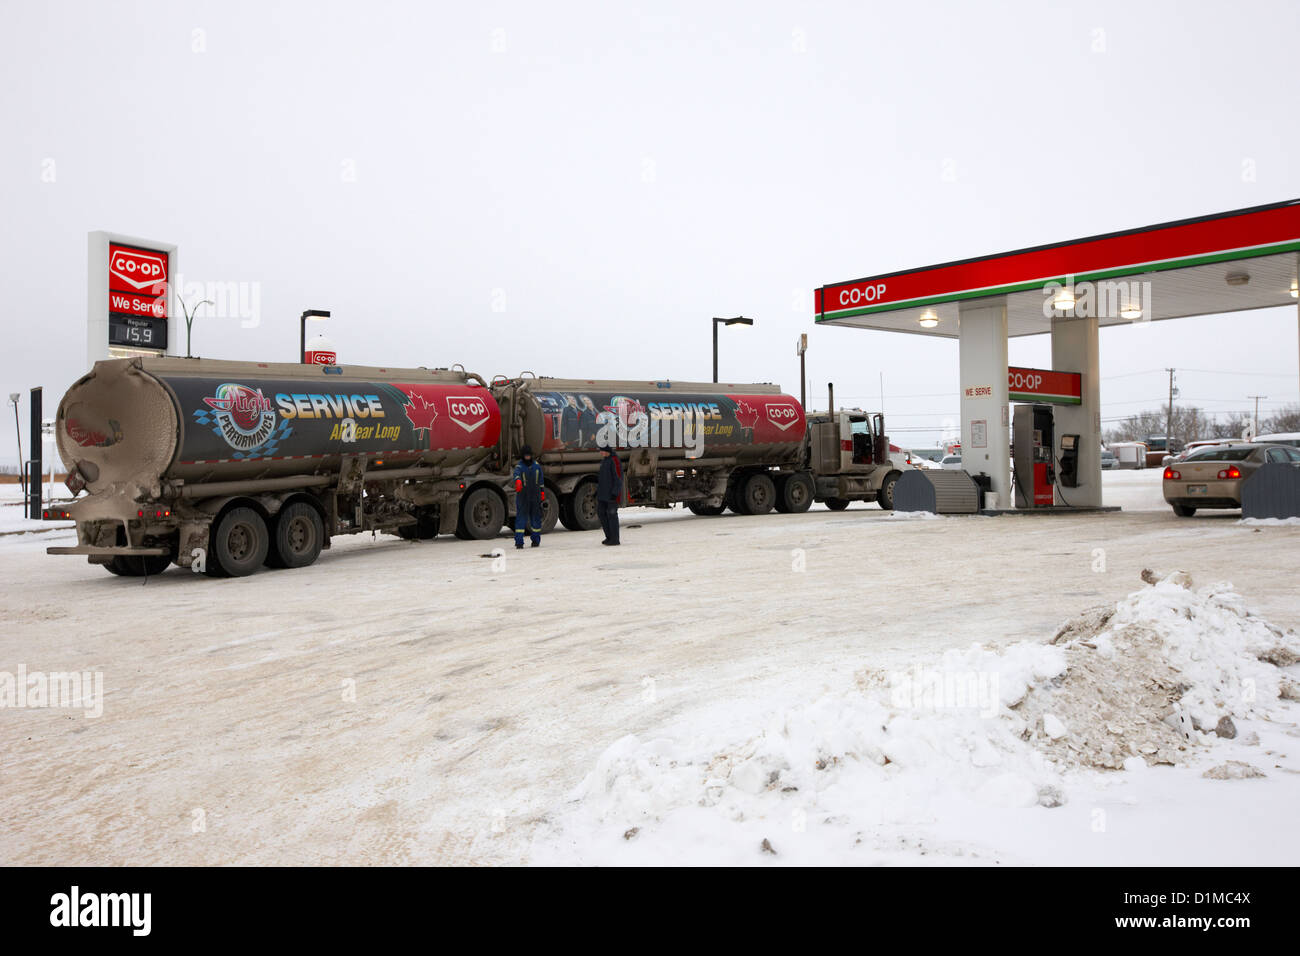 co-op double tanker fuel delivery to gas station in rural Kamsack Saskatchewan Canada - Stock Image